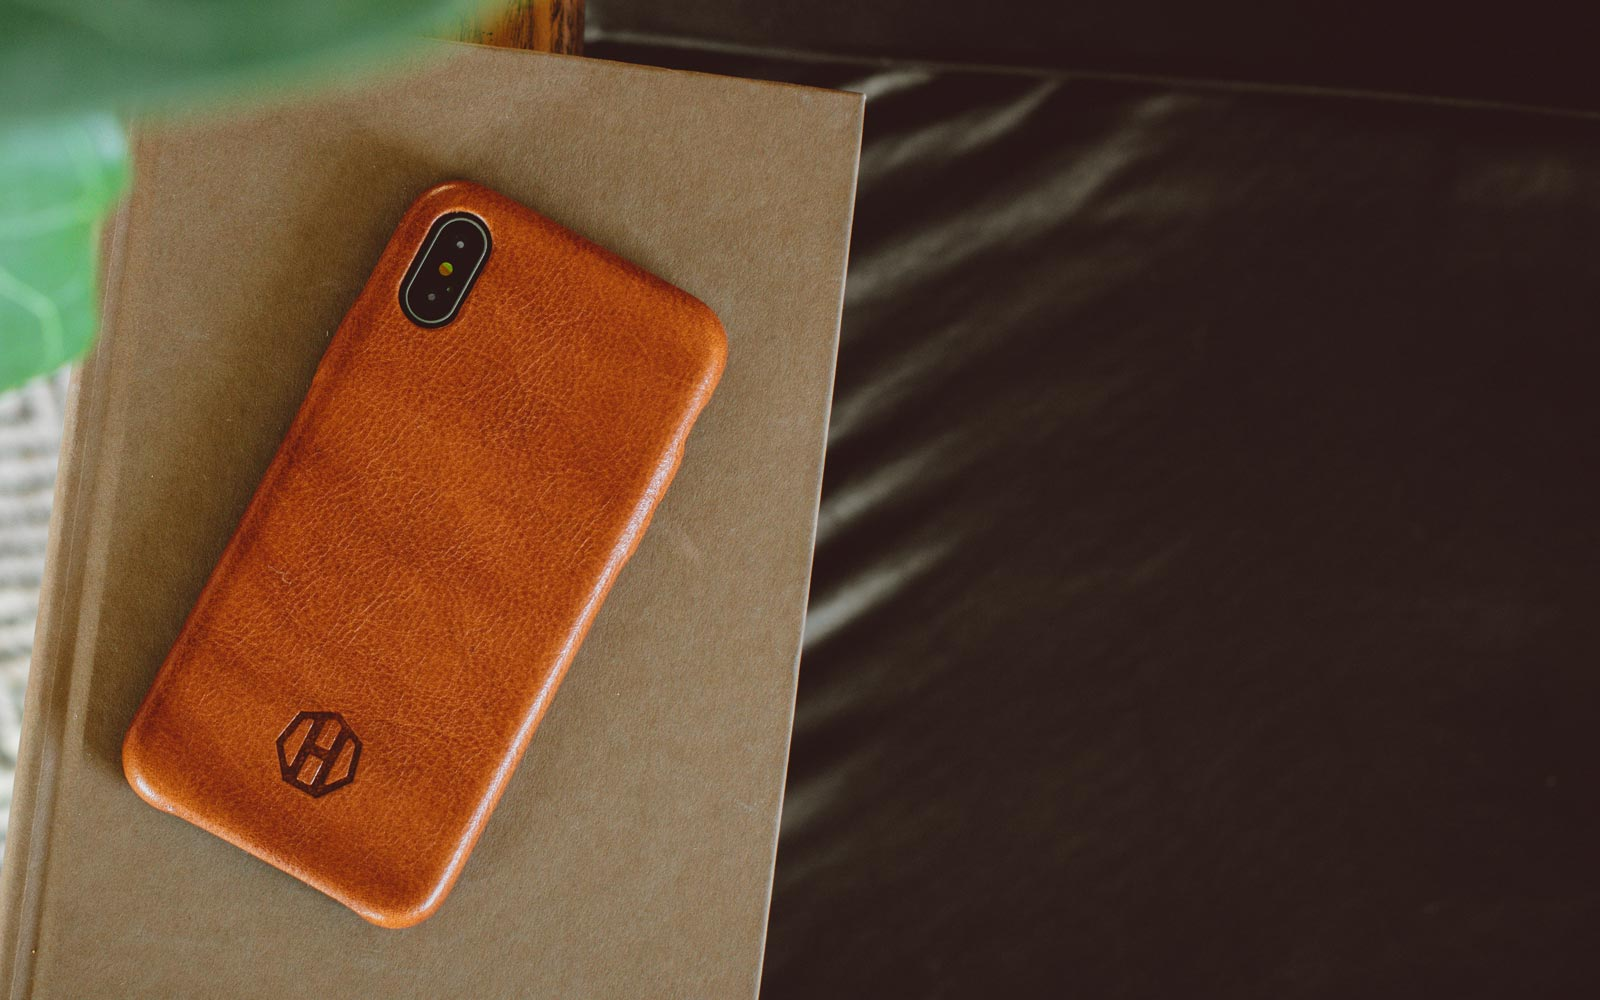 reputable site 12076 8d454 Haxford: Premium Leather Phone Cases & Slim Wallets For Men